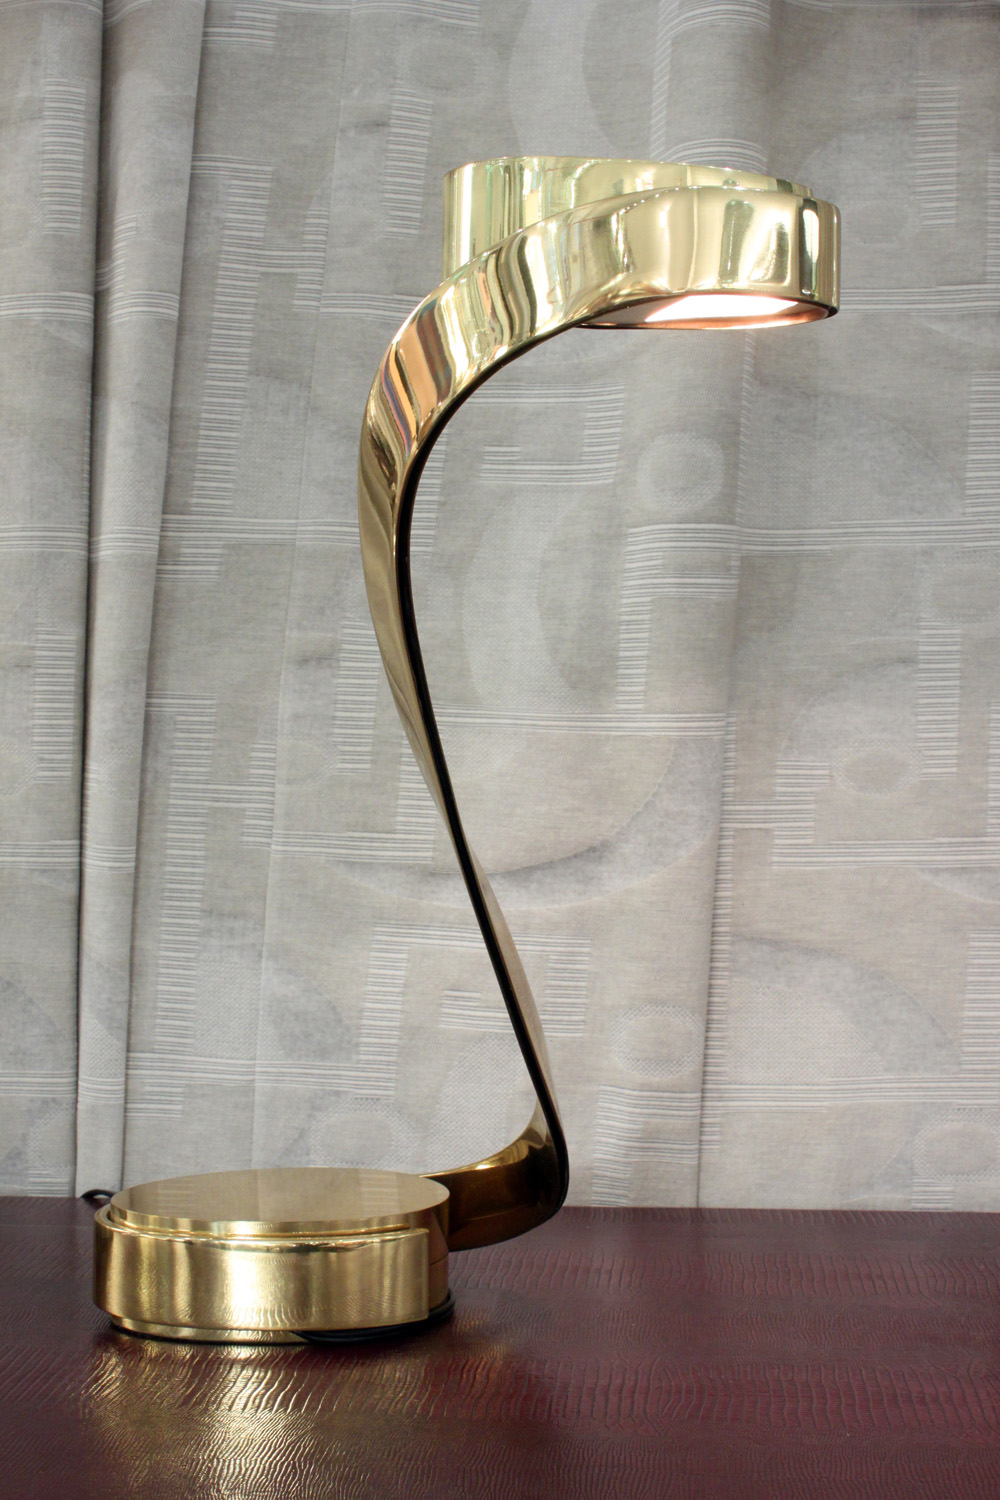 Casella 35 brass snake lamp tablelamp228 detail7 hires.jpg